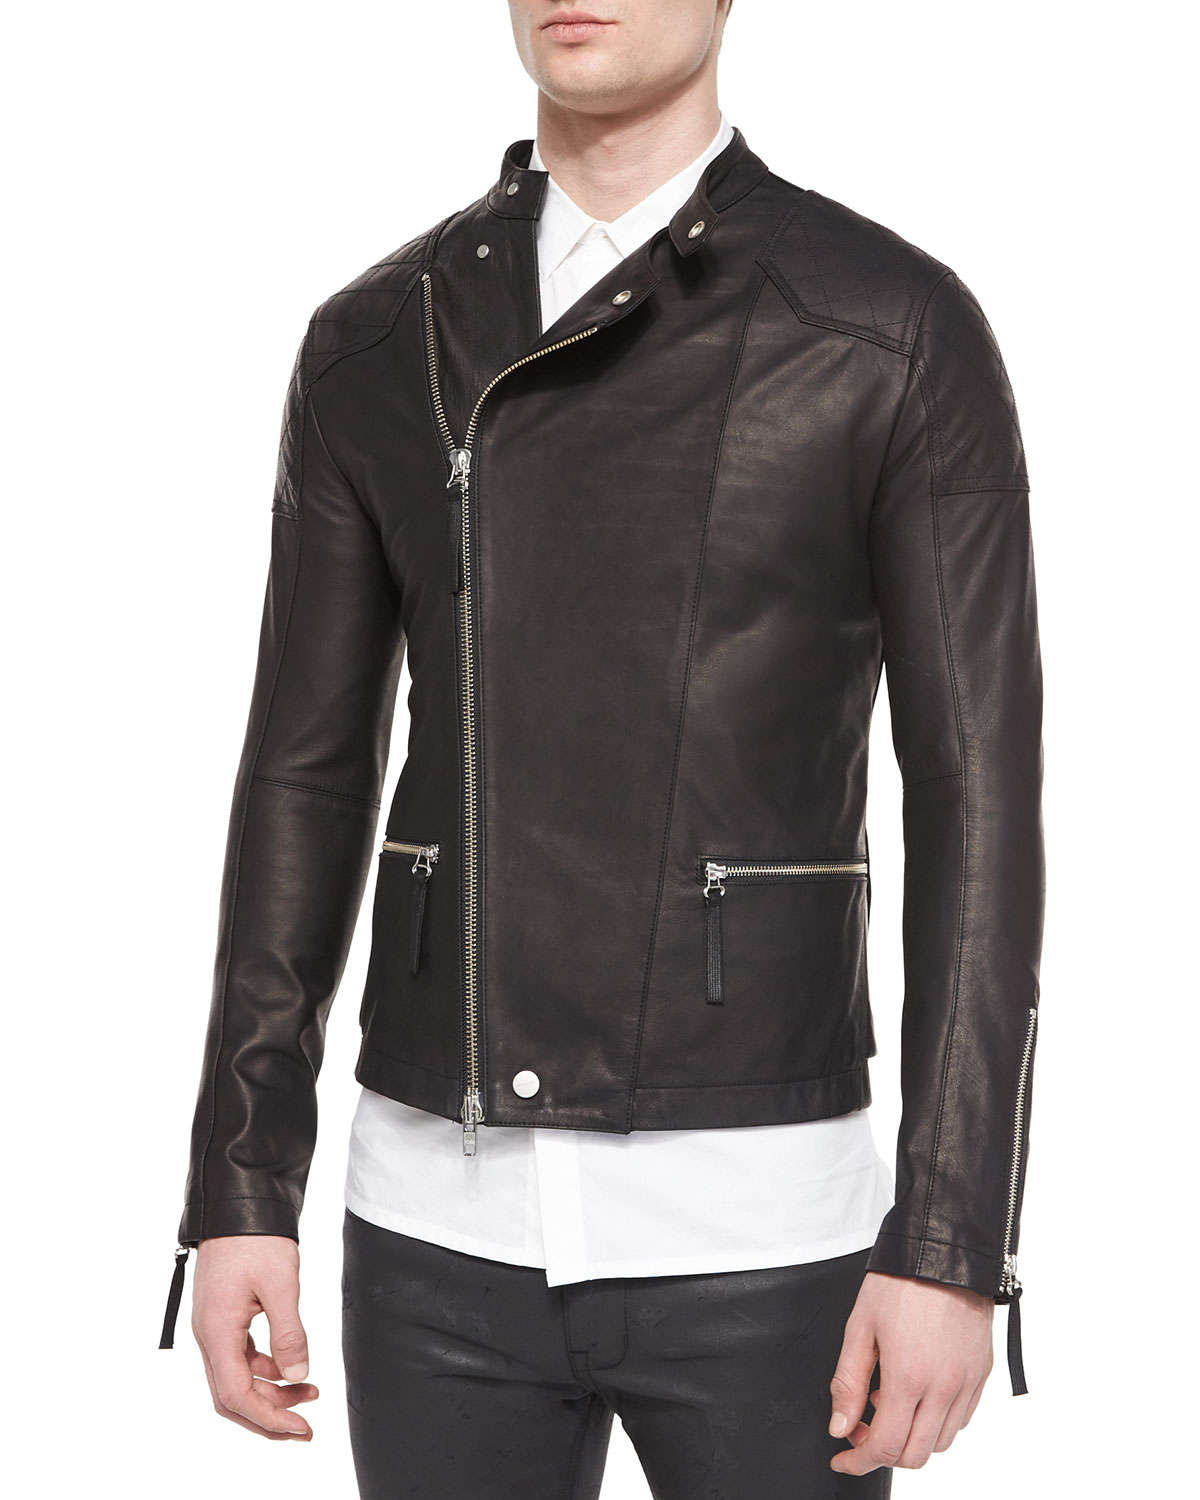 This mens leather jacket features asymmetrical zip closure with wide Genuine Brown Leather Jacket Men - Motorcycle Distressed Lambskin Leather Jackets for Men. by fjackets. $ $ 00 Prime. FREE Shipping on eligible orders. Some sizes/colors are Prime eligible. out of 5 stars